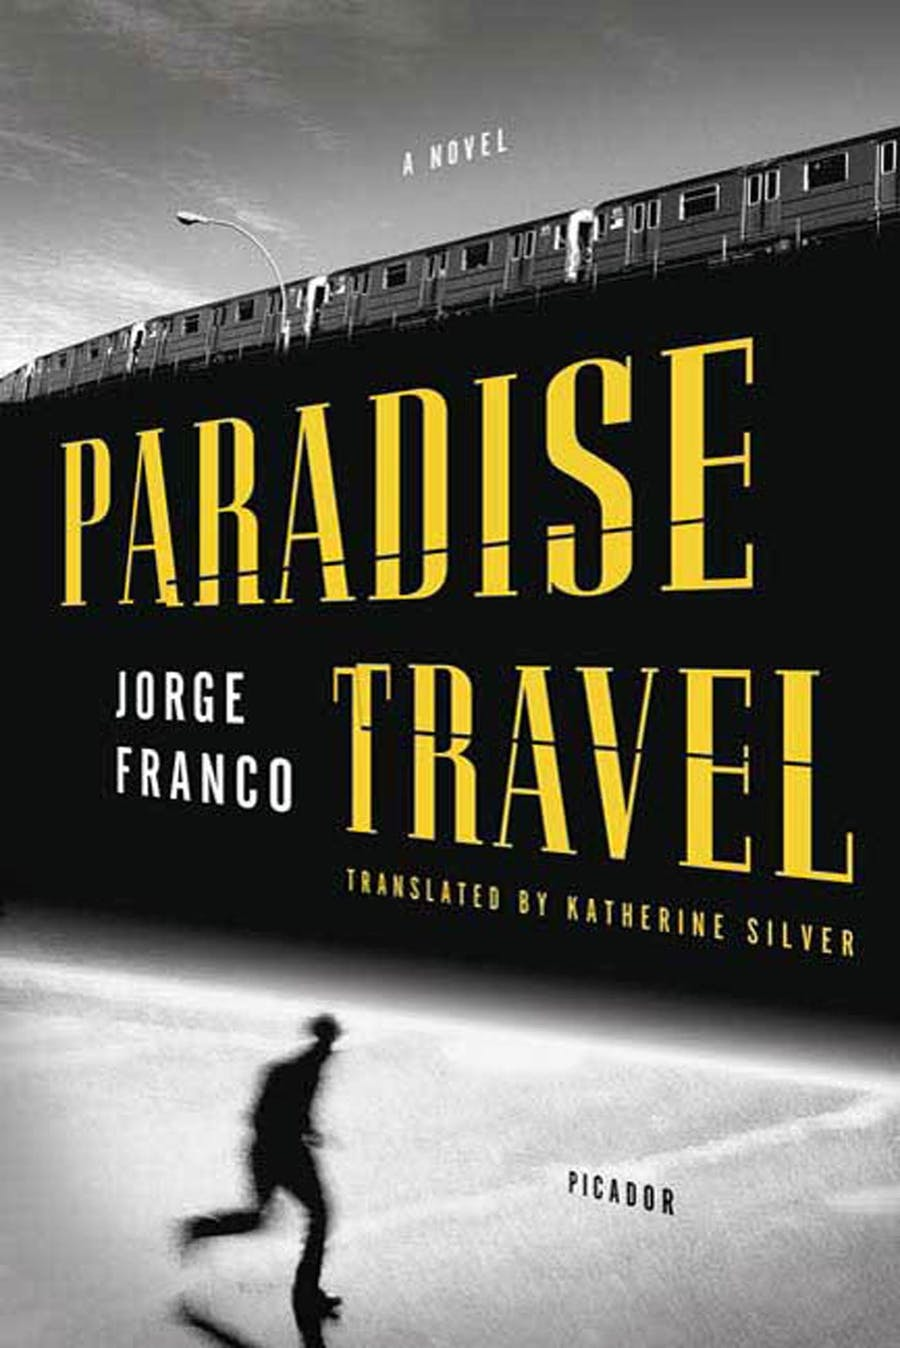 Paradise Travel by Jorge Franco; Translated by Katherine Silver